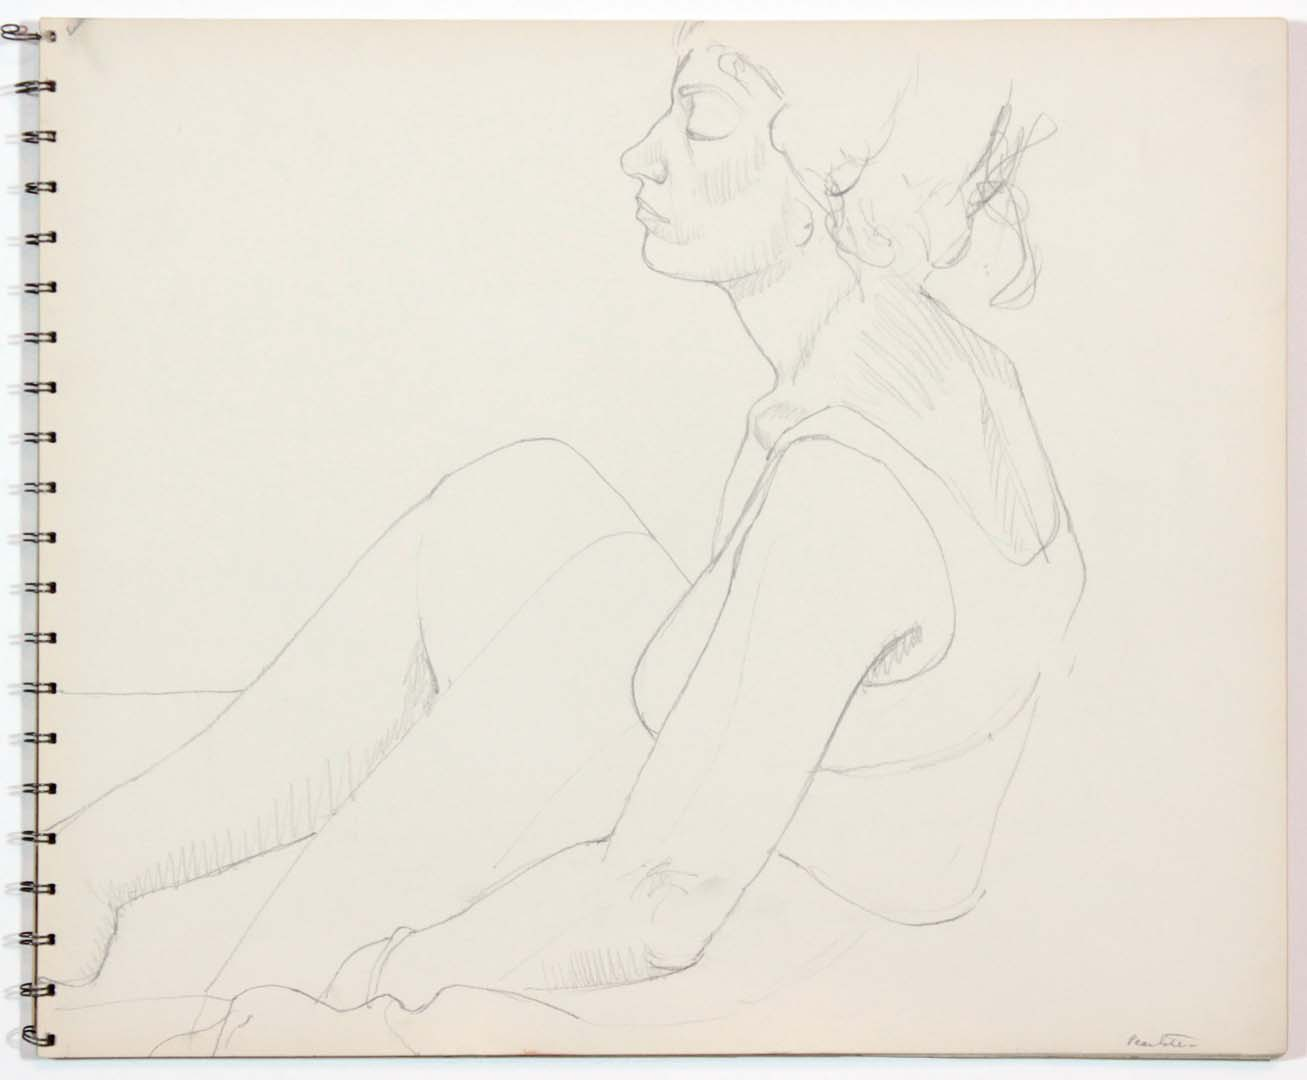 1962 Untitled Graphite 13.875 x 16.75